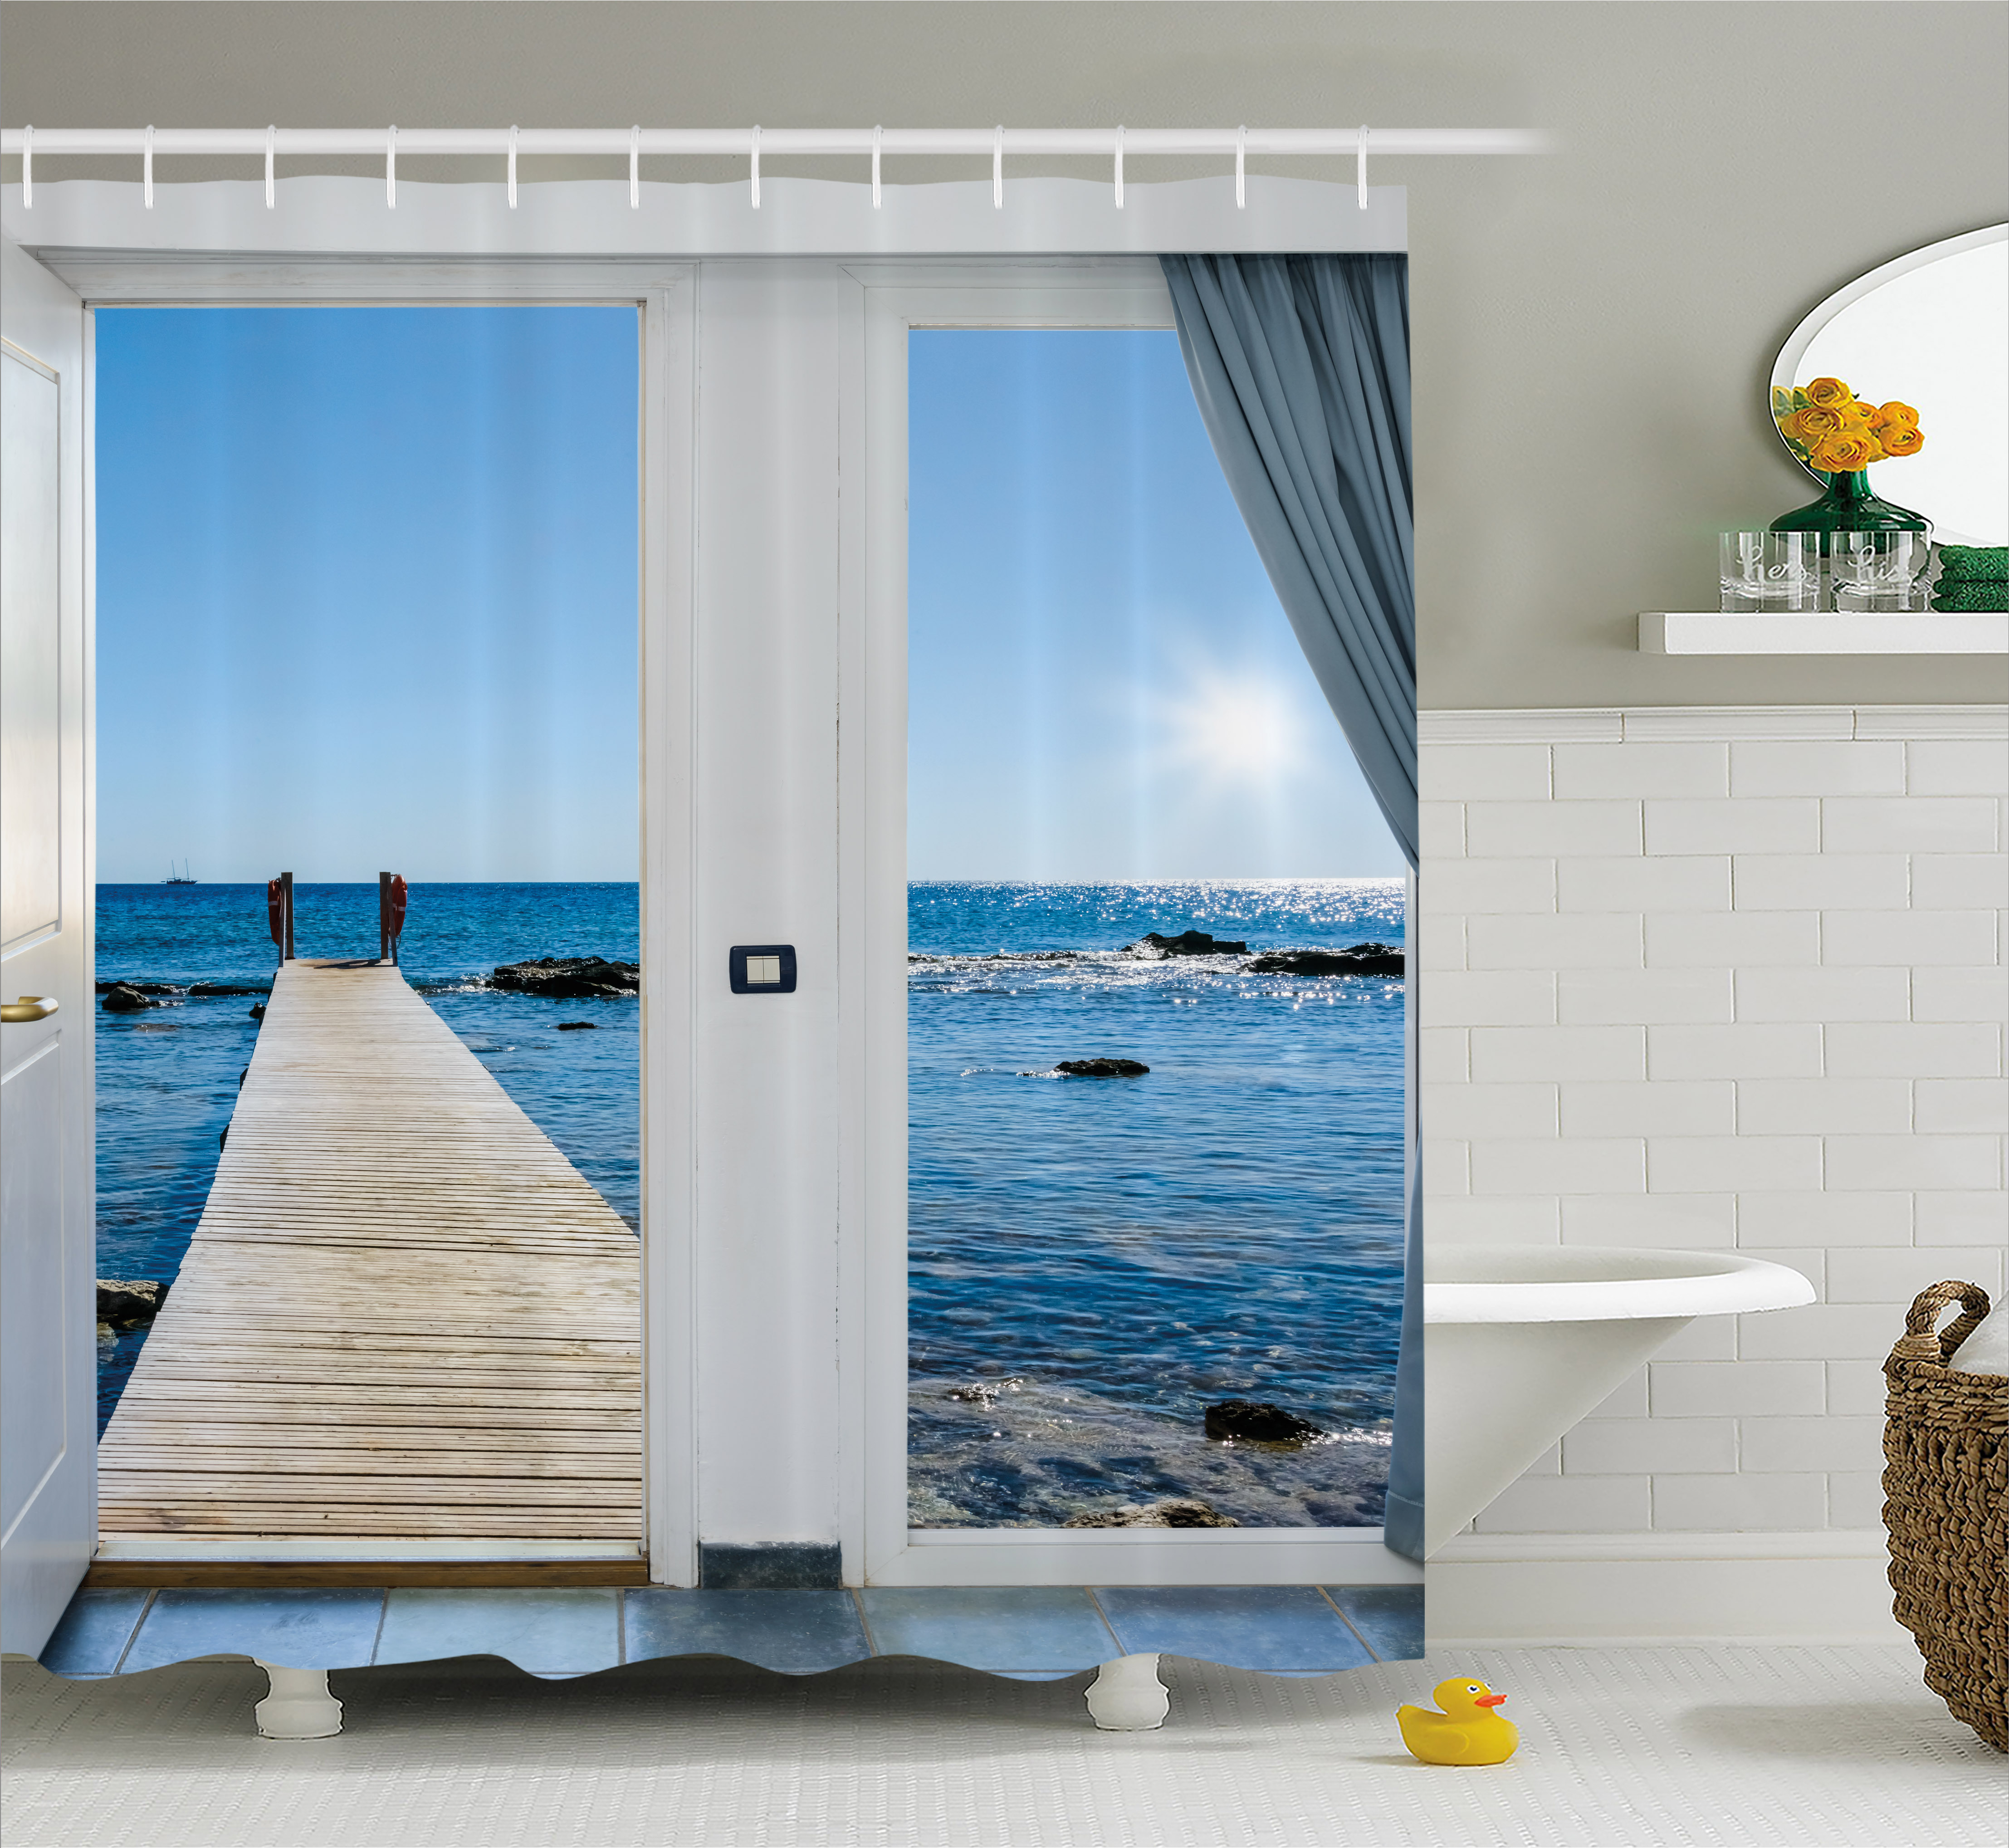 Beach Shower Curtain, Coastal Theme With The Ocean Sea Sunny Day Scenery  With Patio From